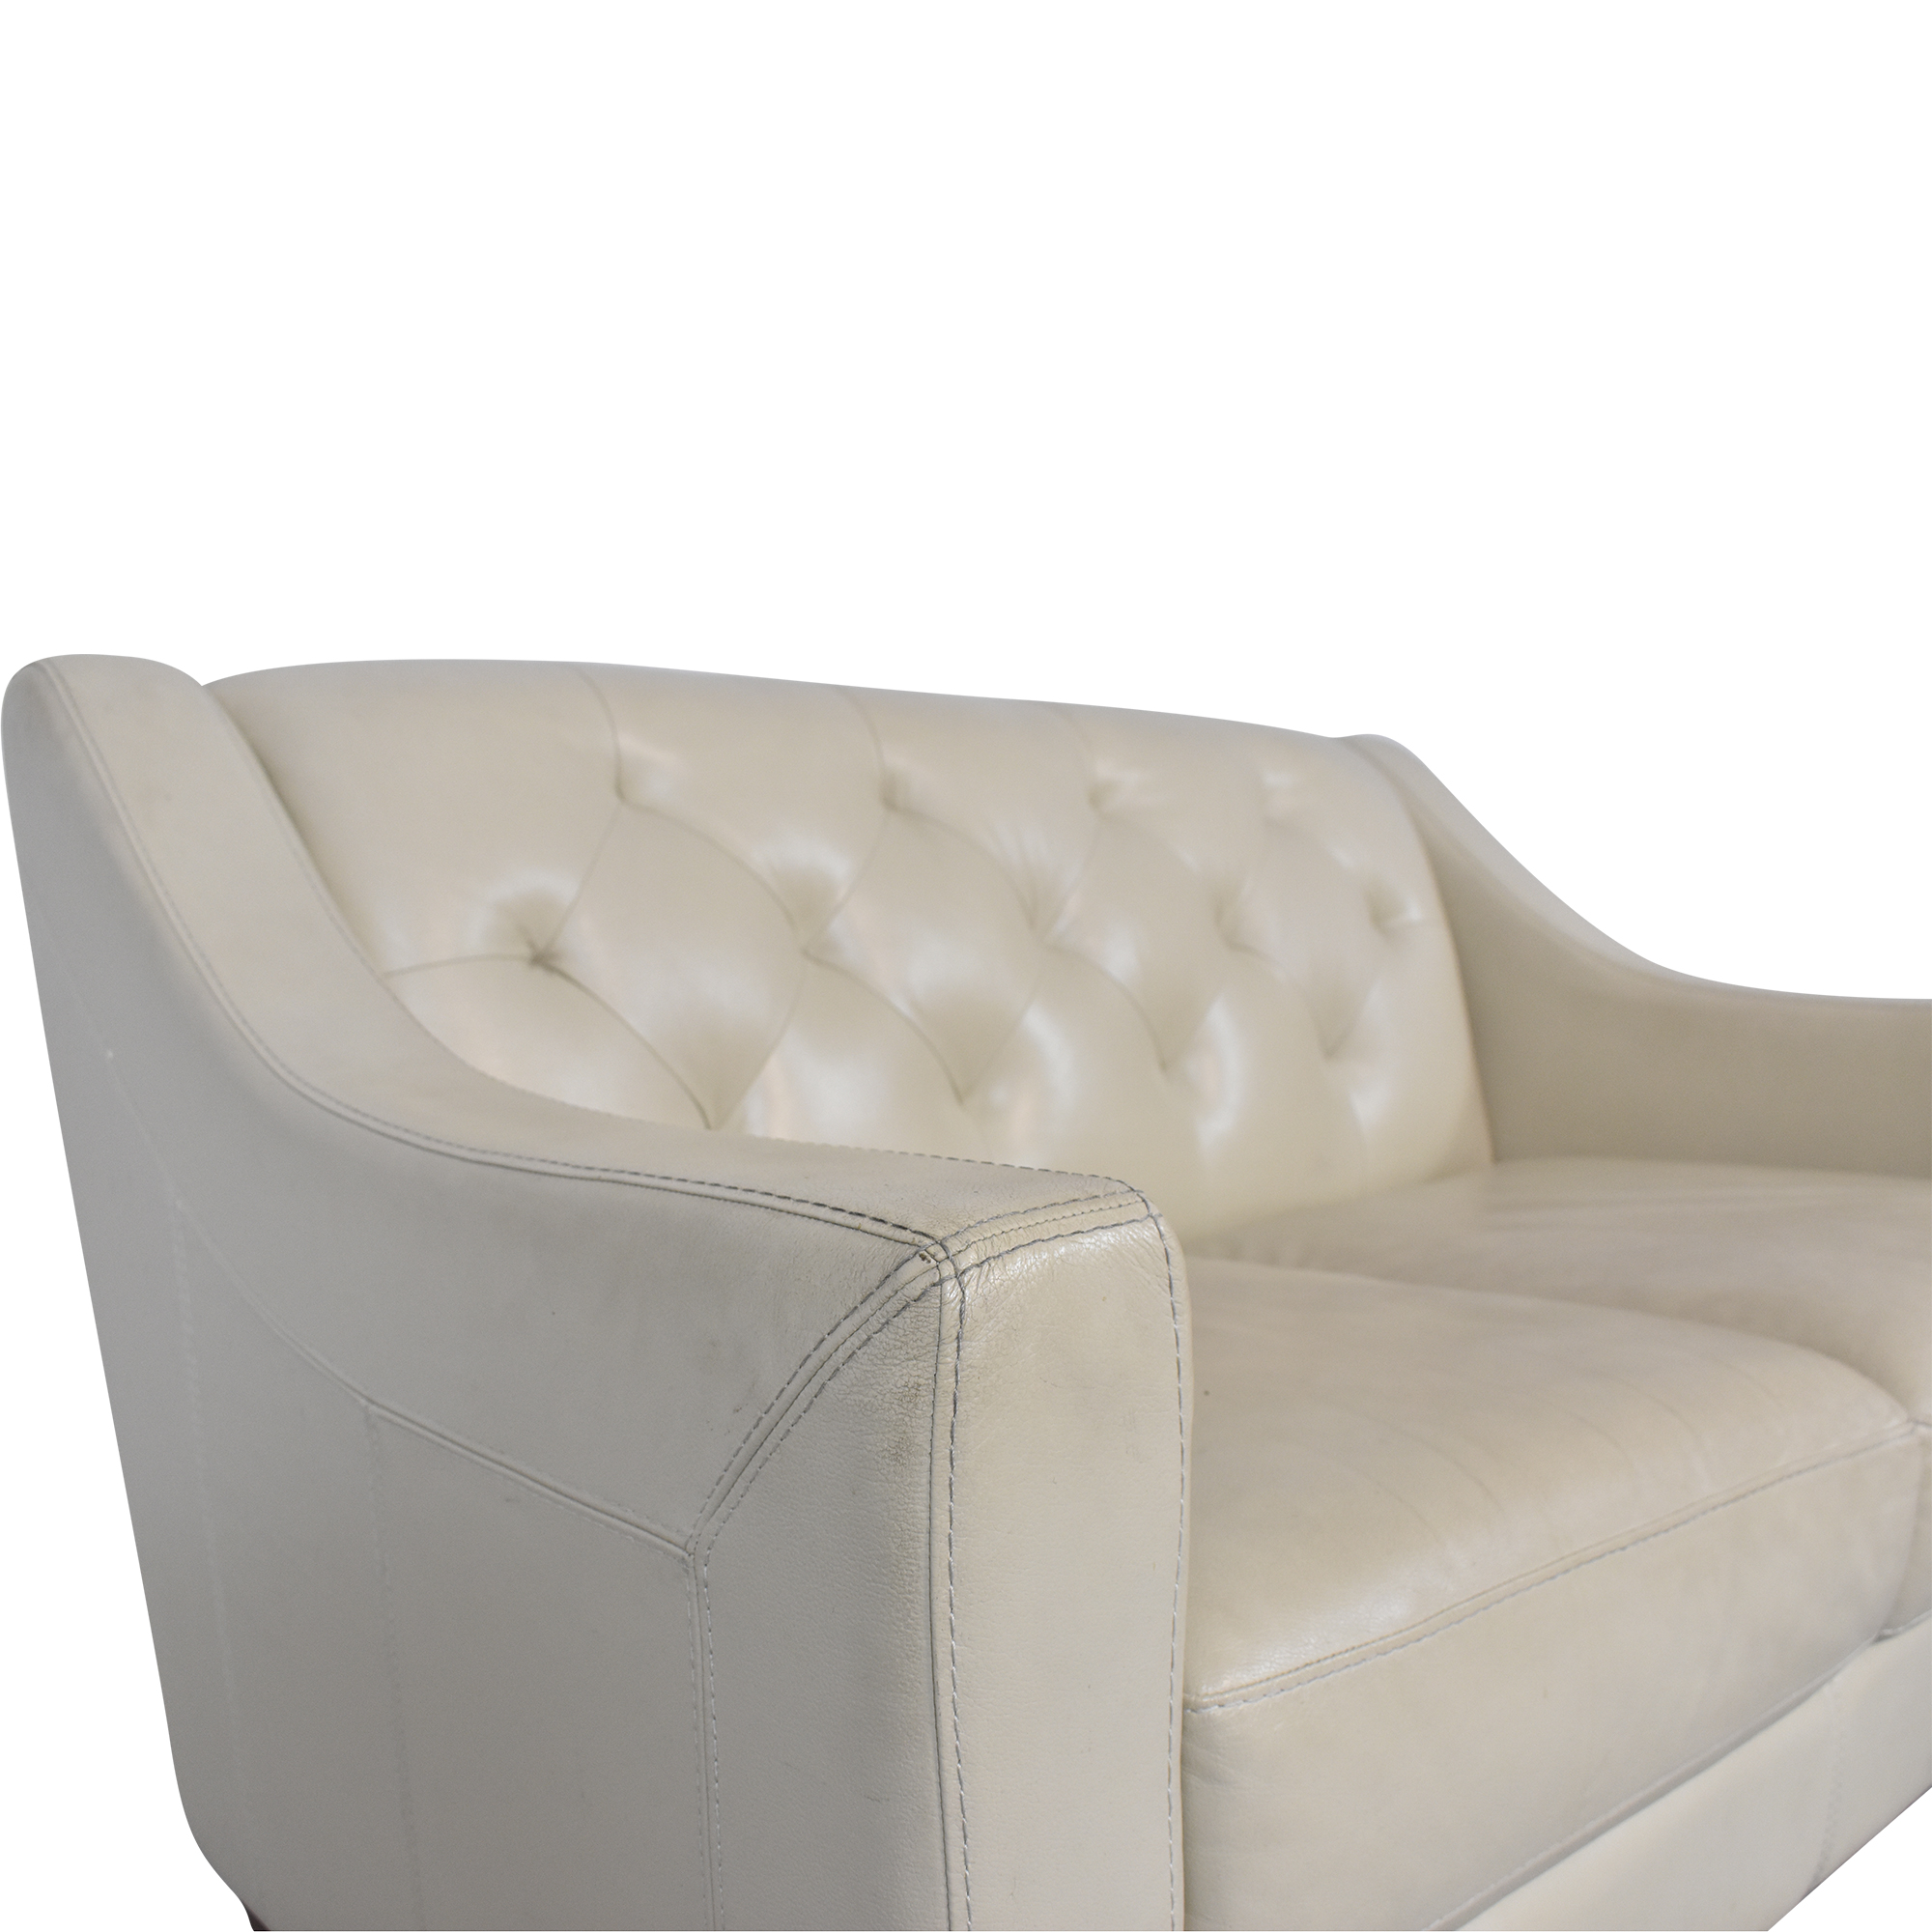 Chateau d'Ax Chateau d'Ax Slope Arm Tufted Loveseat on sale